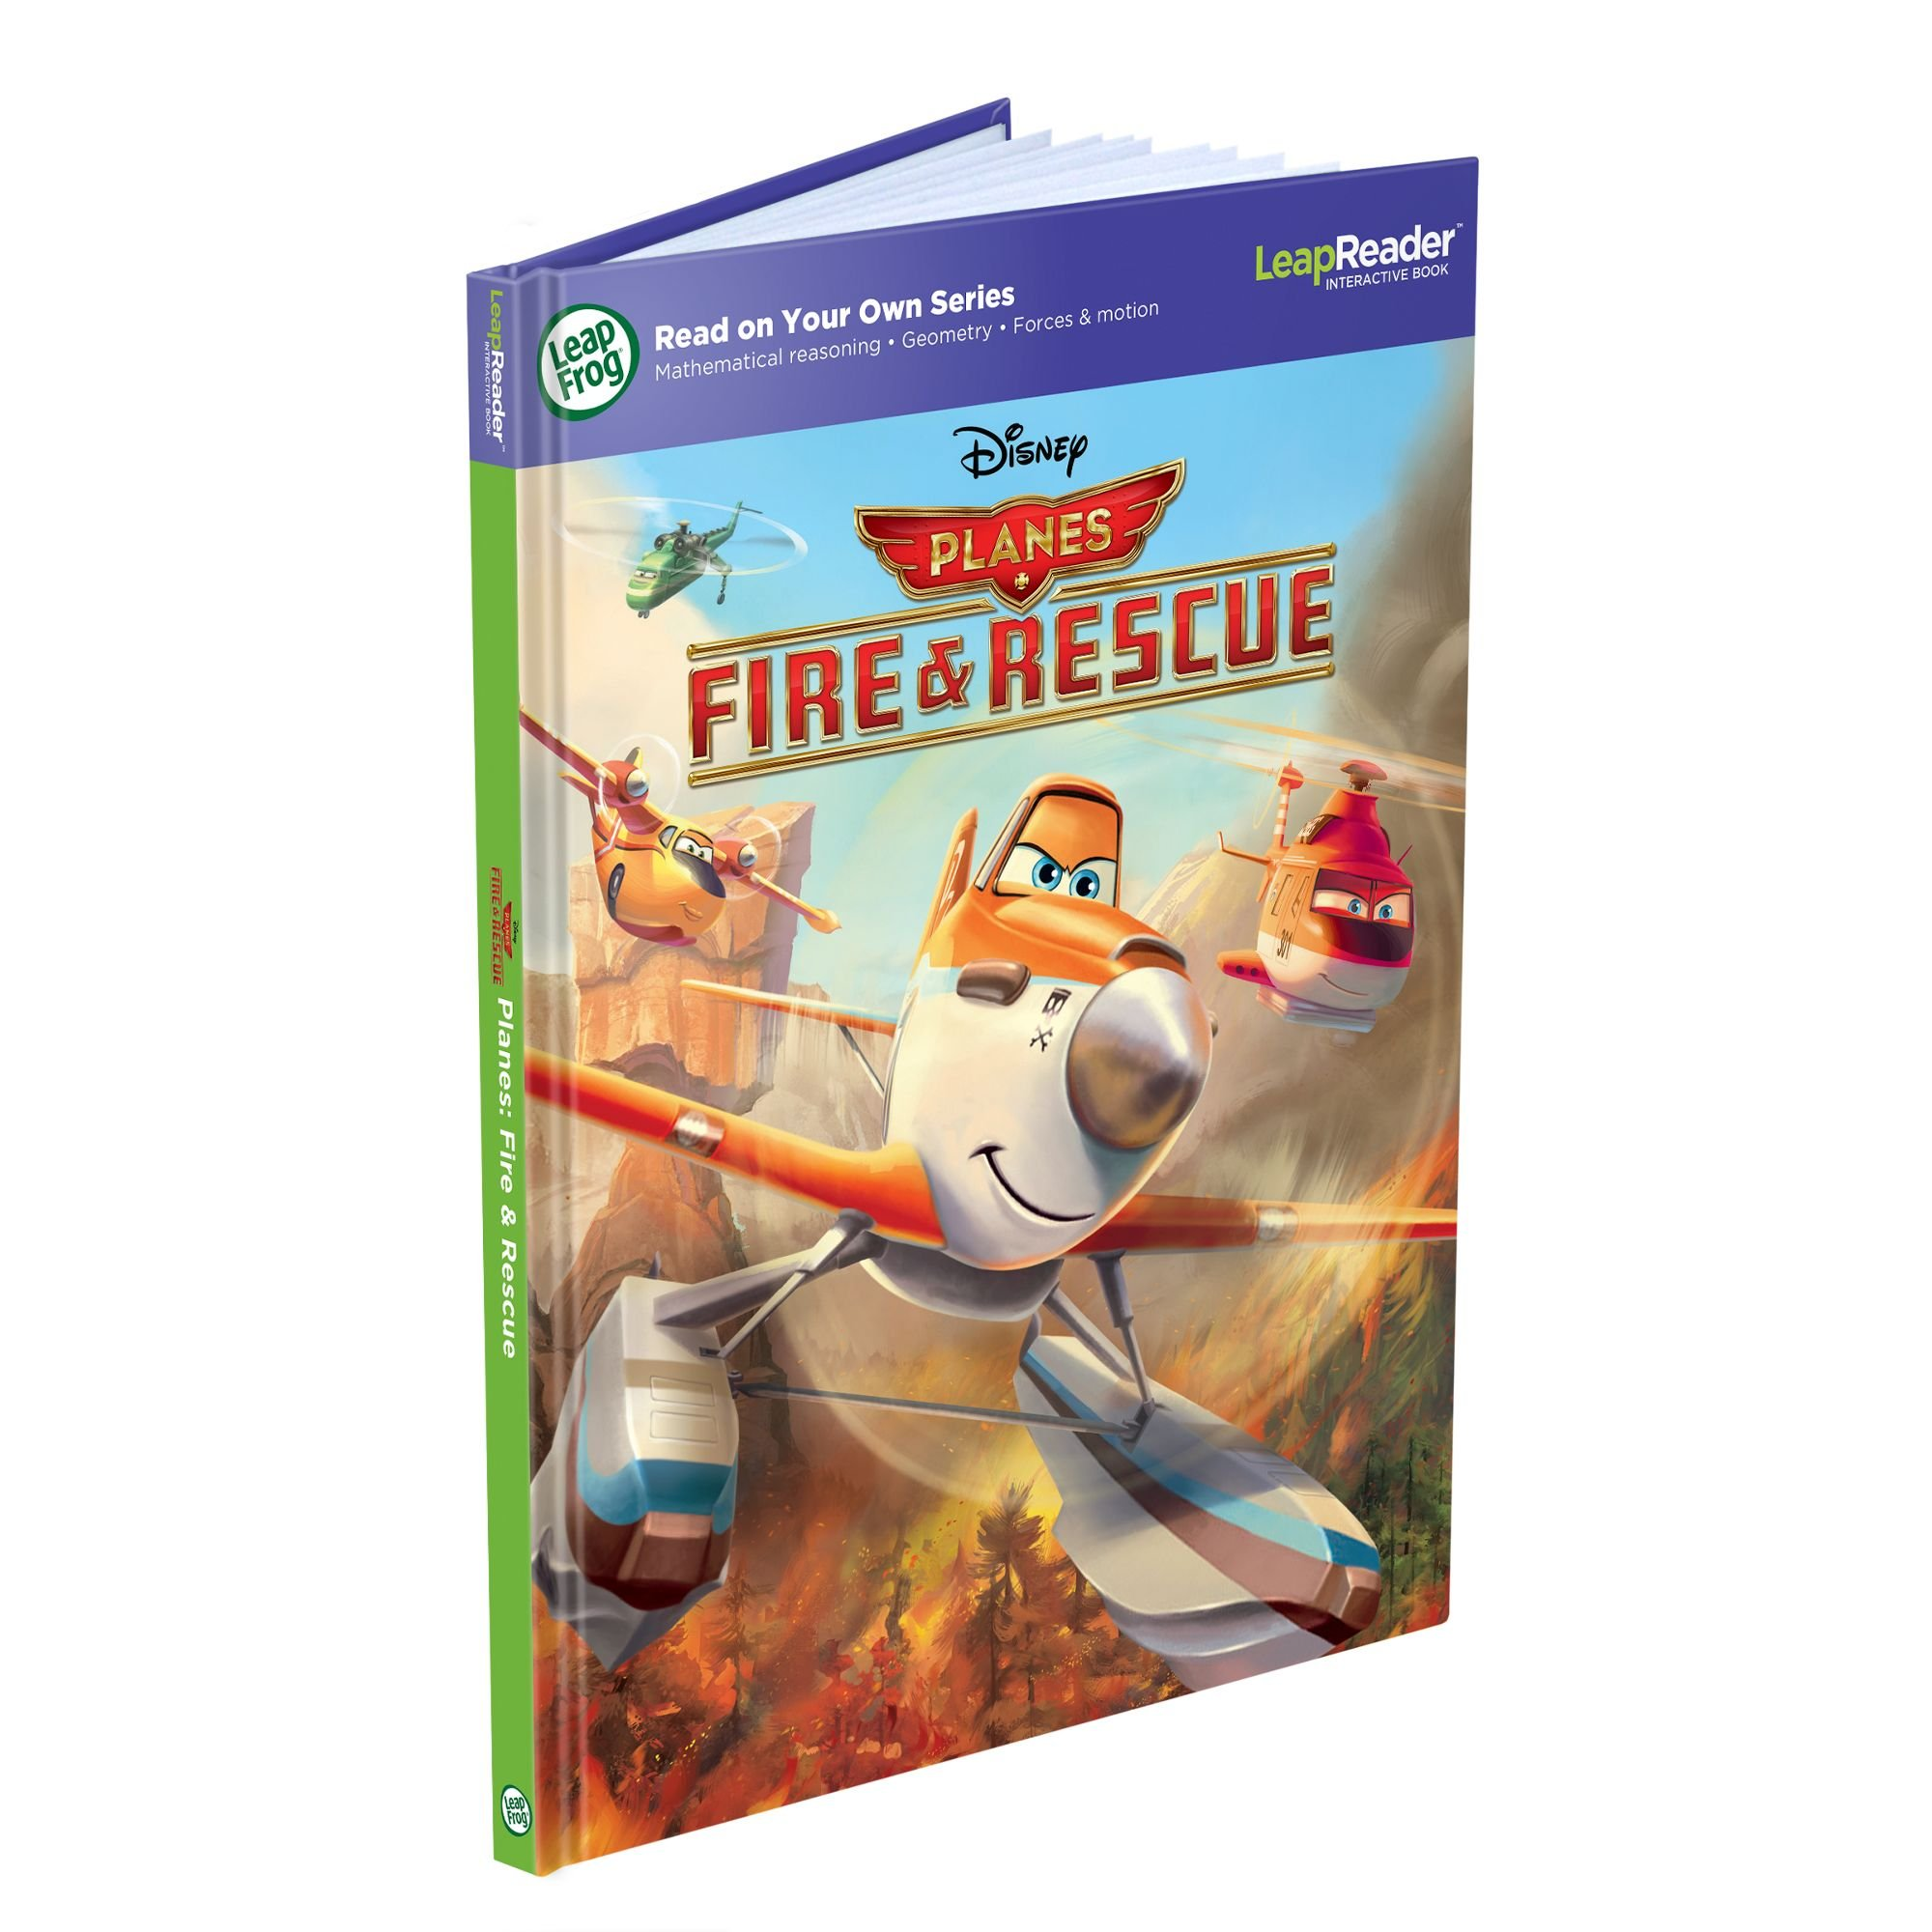 LeapFrog LeapReader Book: Disney Planes Fire and Rescue by LeapFrog